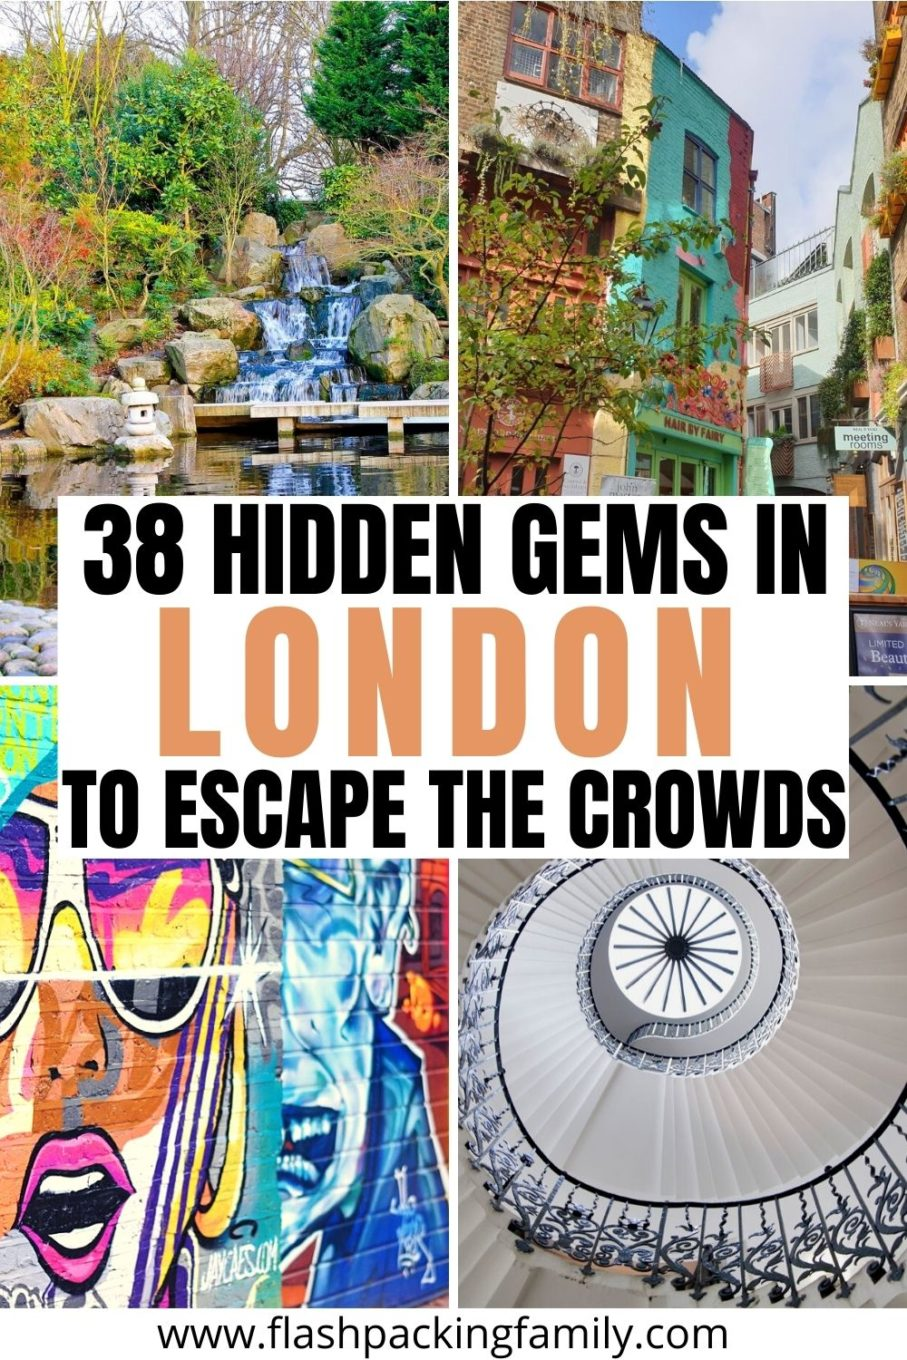 38 Hidden Gems in london to Escape The Crowds